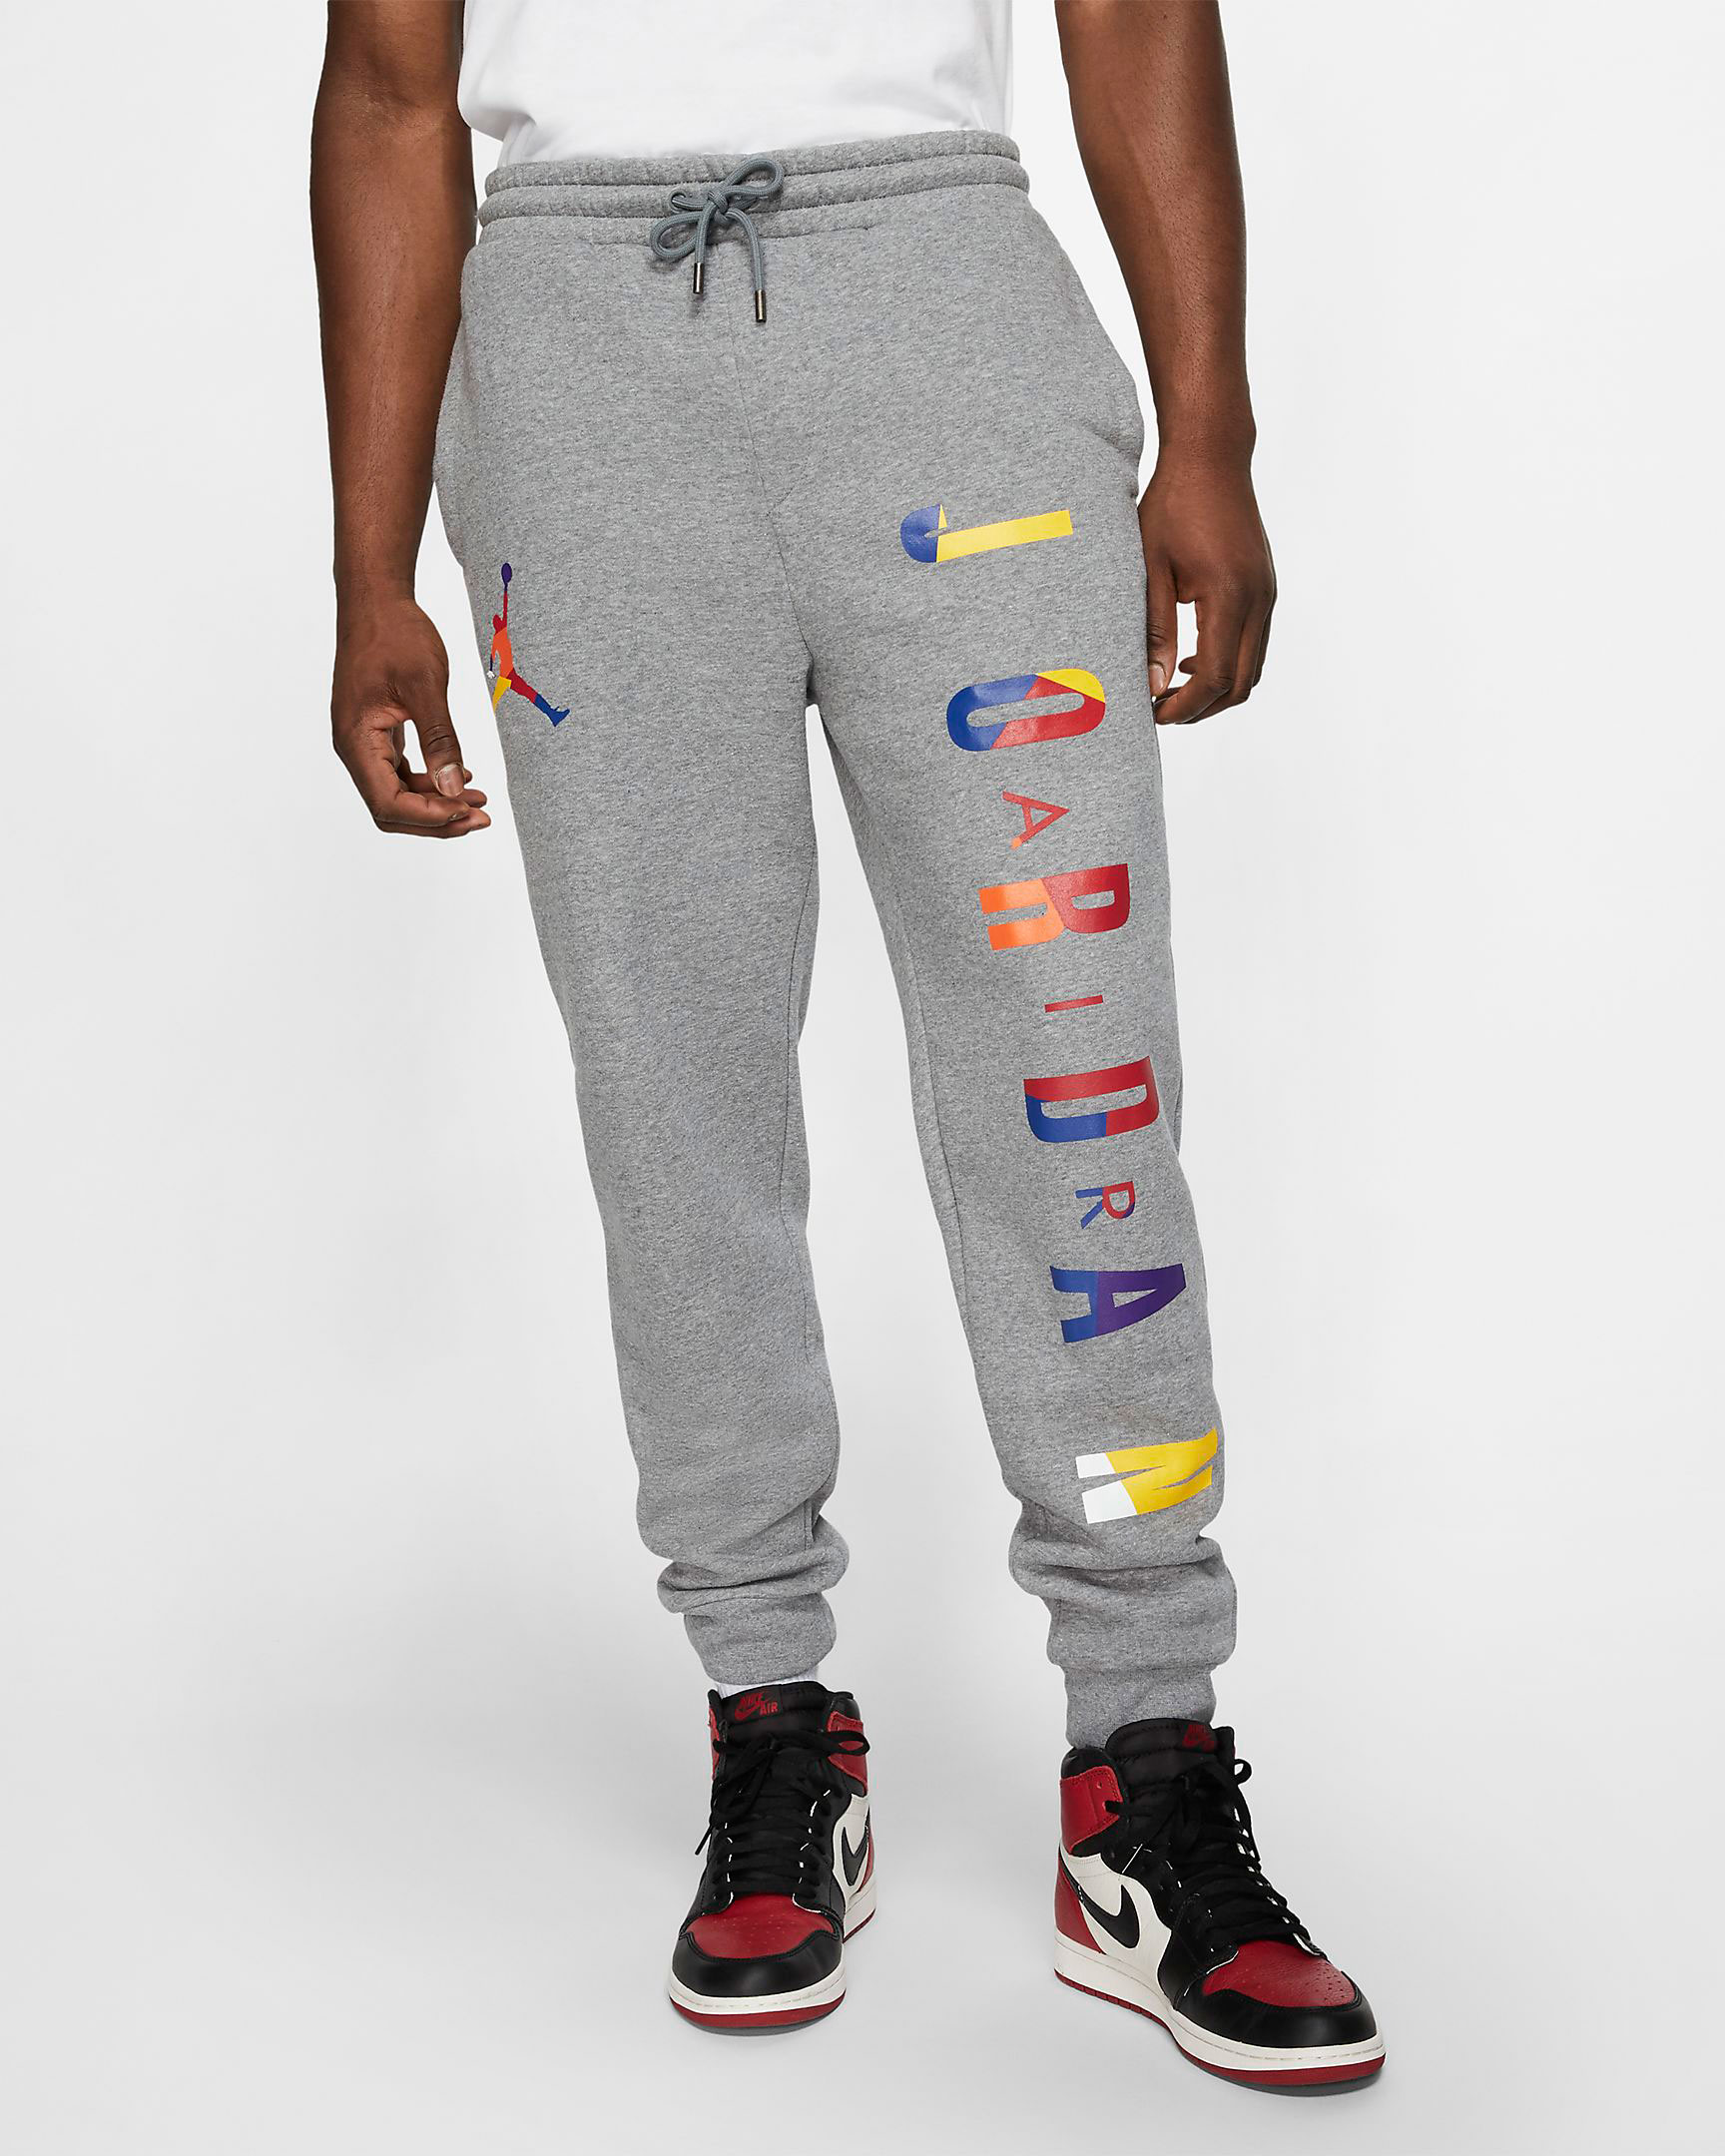 air-jordan-3-knicks-jogger-pant-match-grey-1